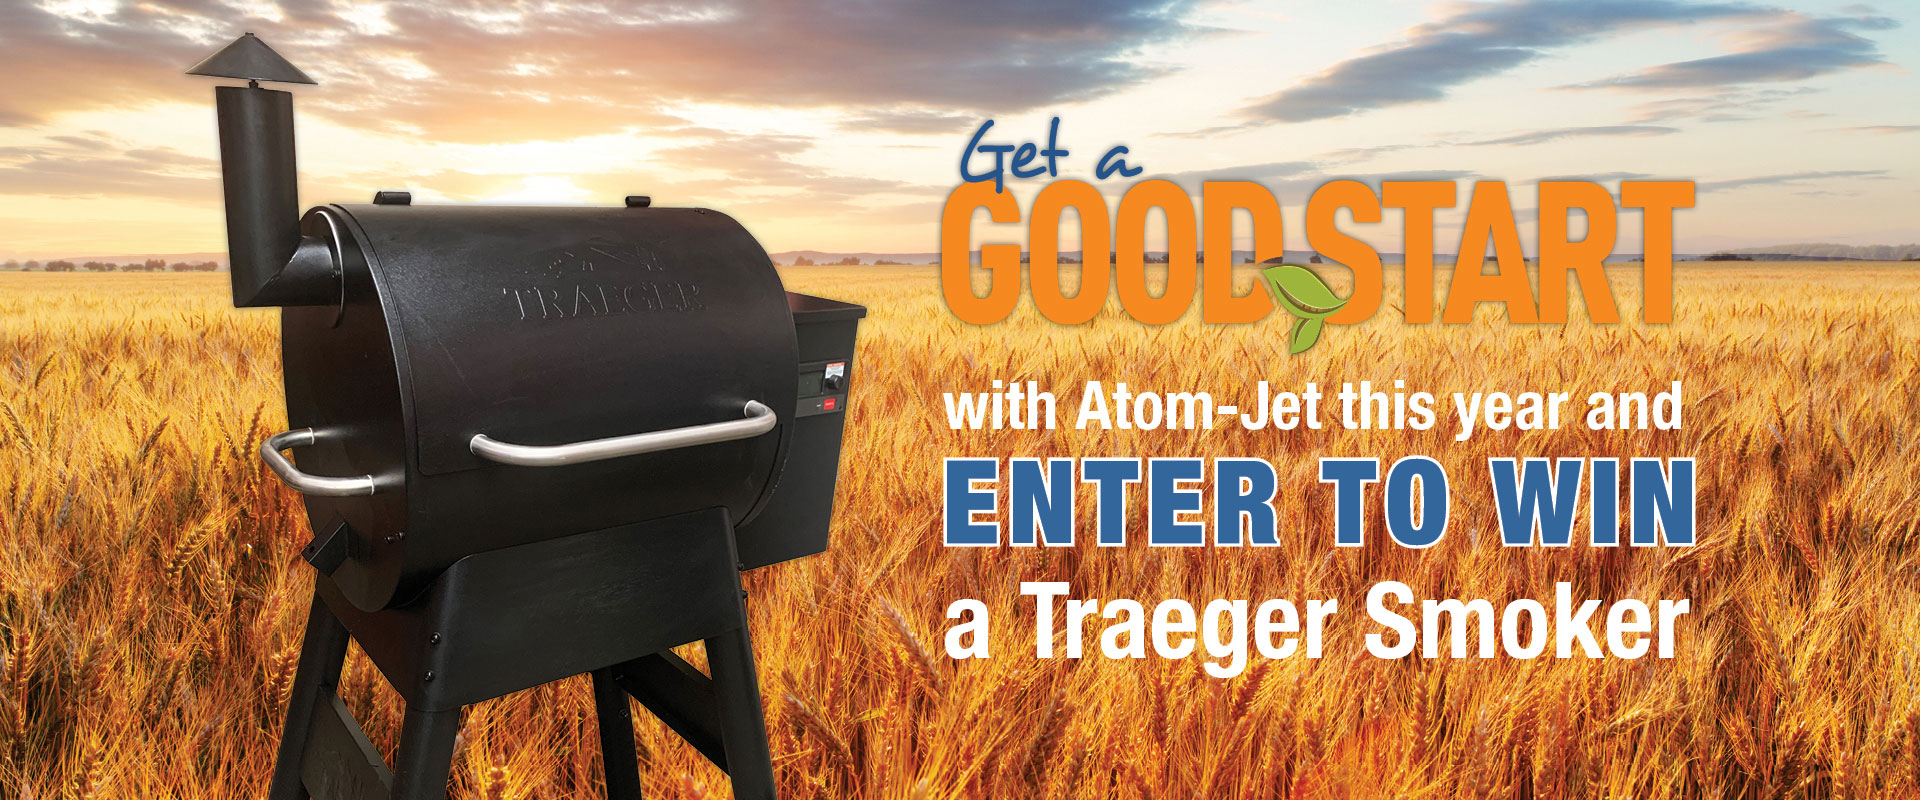 Traeger smoker against a field of grain ready for harvest: Get a Good Start with Atom-Jet this year and Enter to Win a Traeger Smoker!